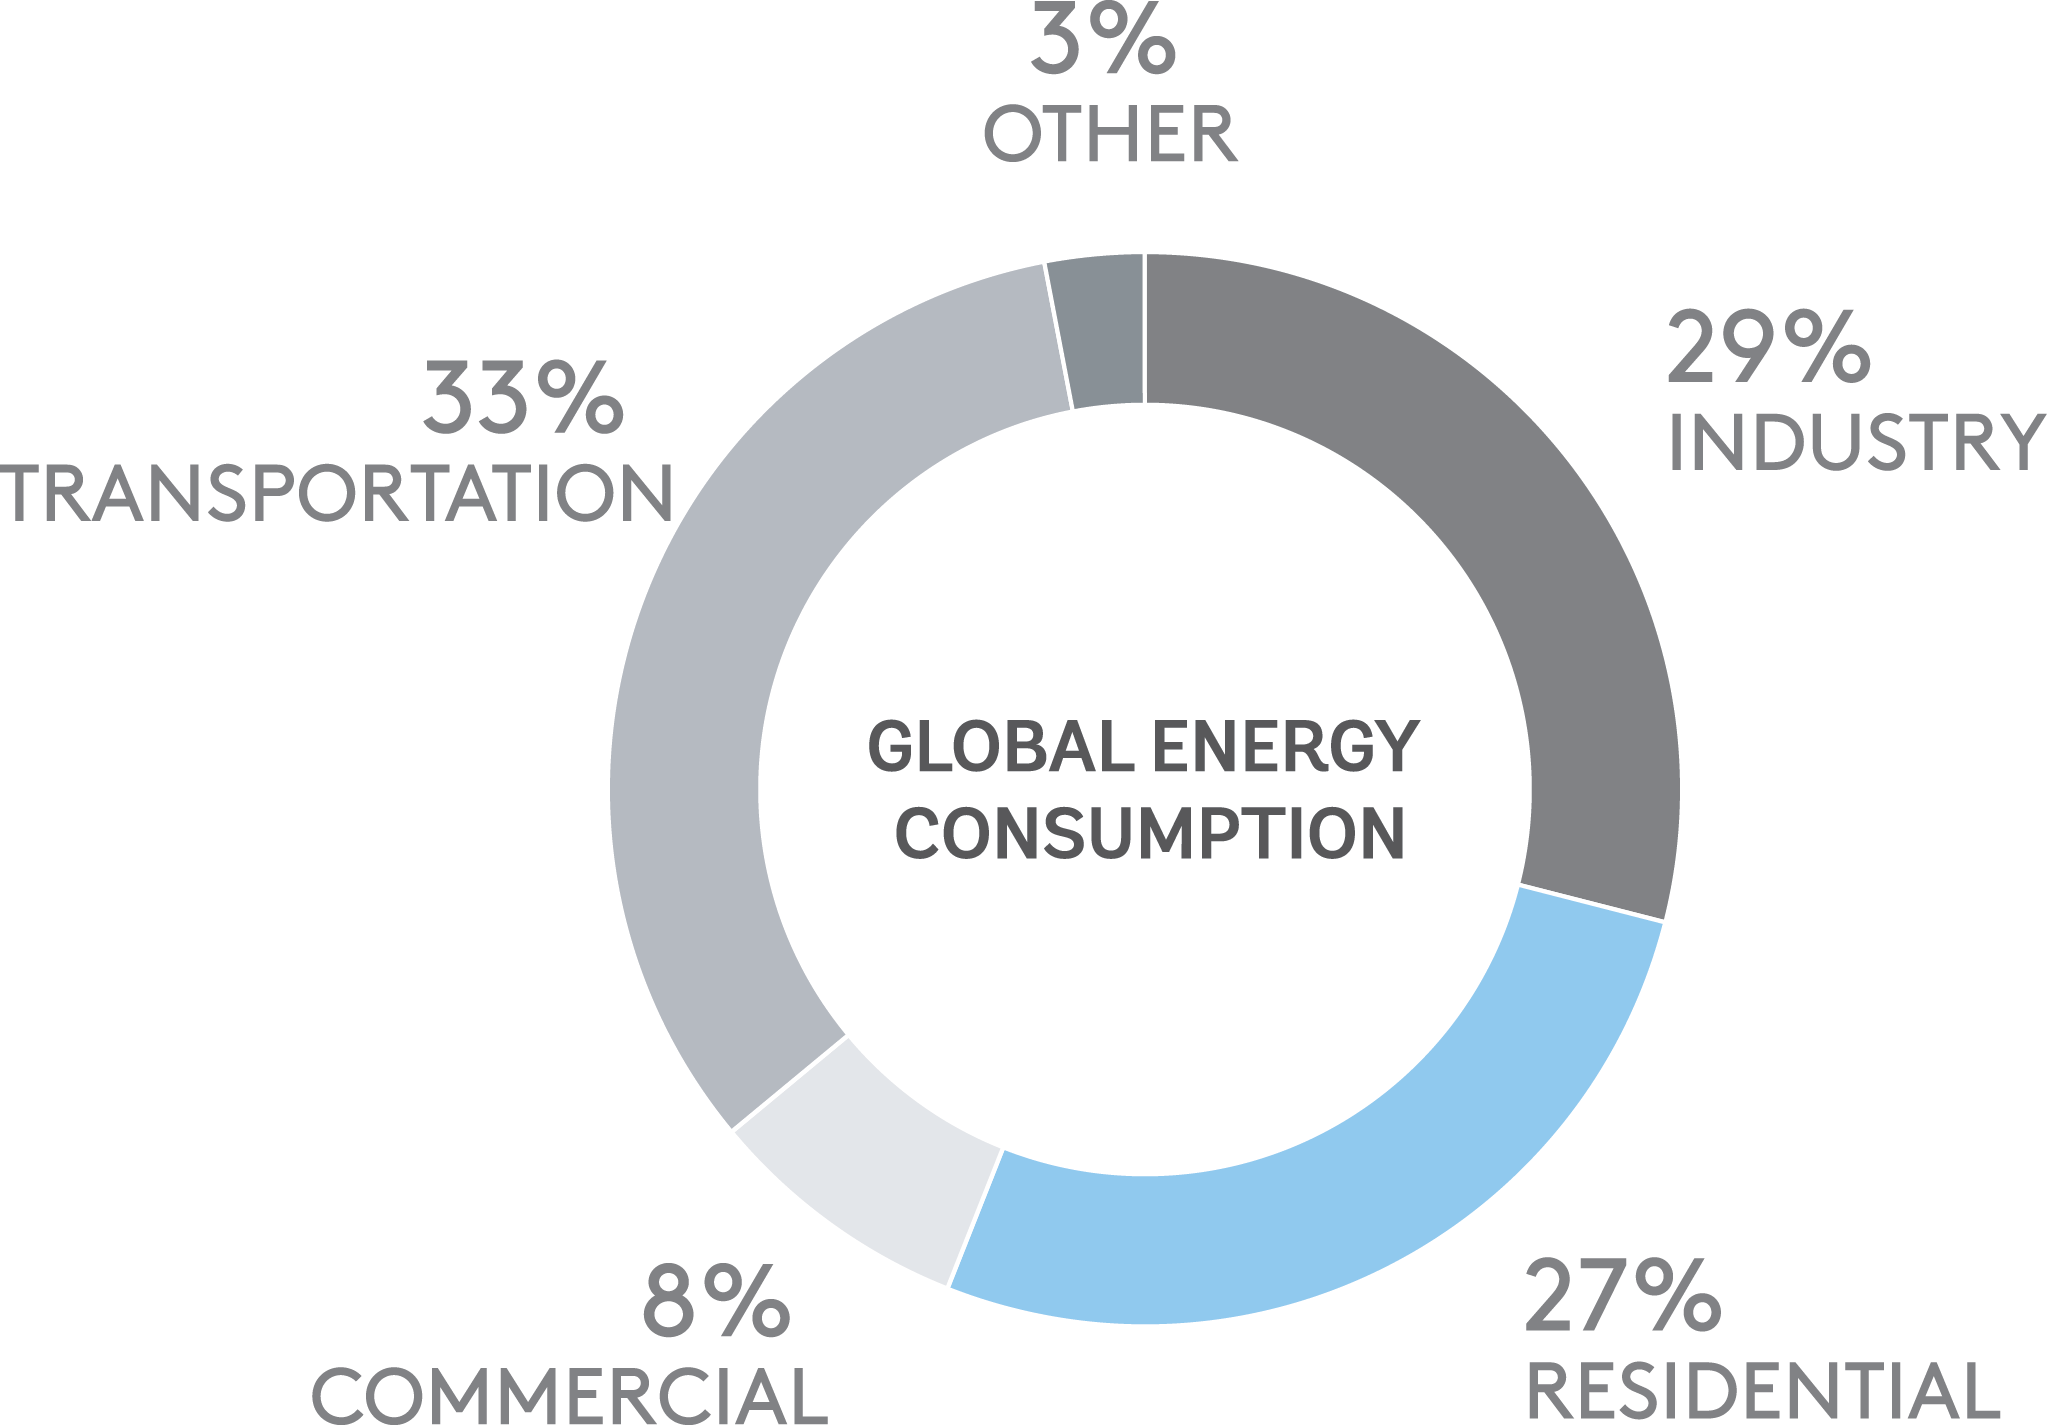 Research - Residential energy use represents the third largest sector of global consumption. Over consumption is having a devastating effect on our planet. Reducing energy consumption reduces the amount of carbon dioxide that is released into the atmosphere.